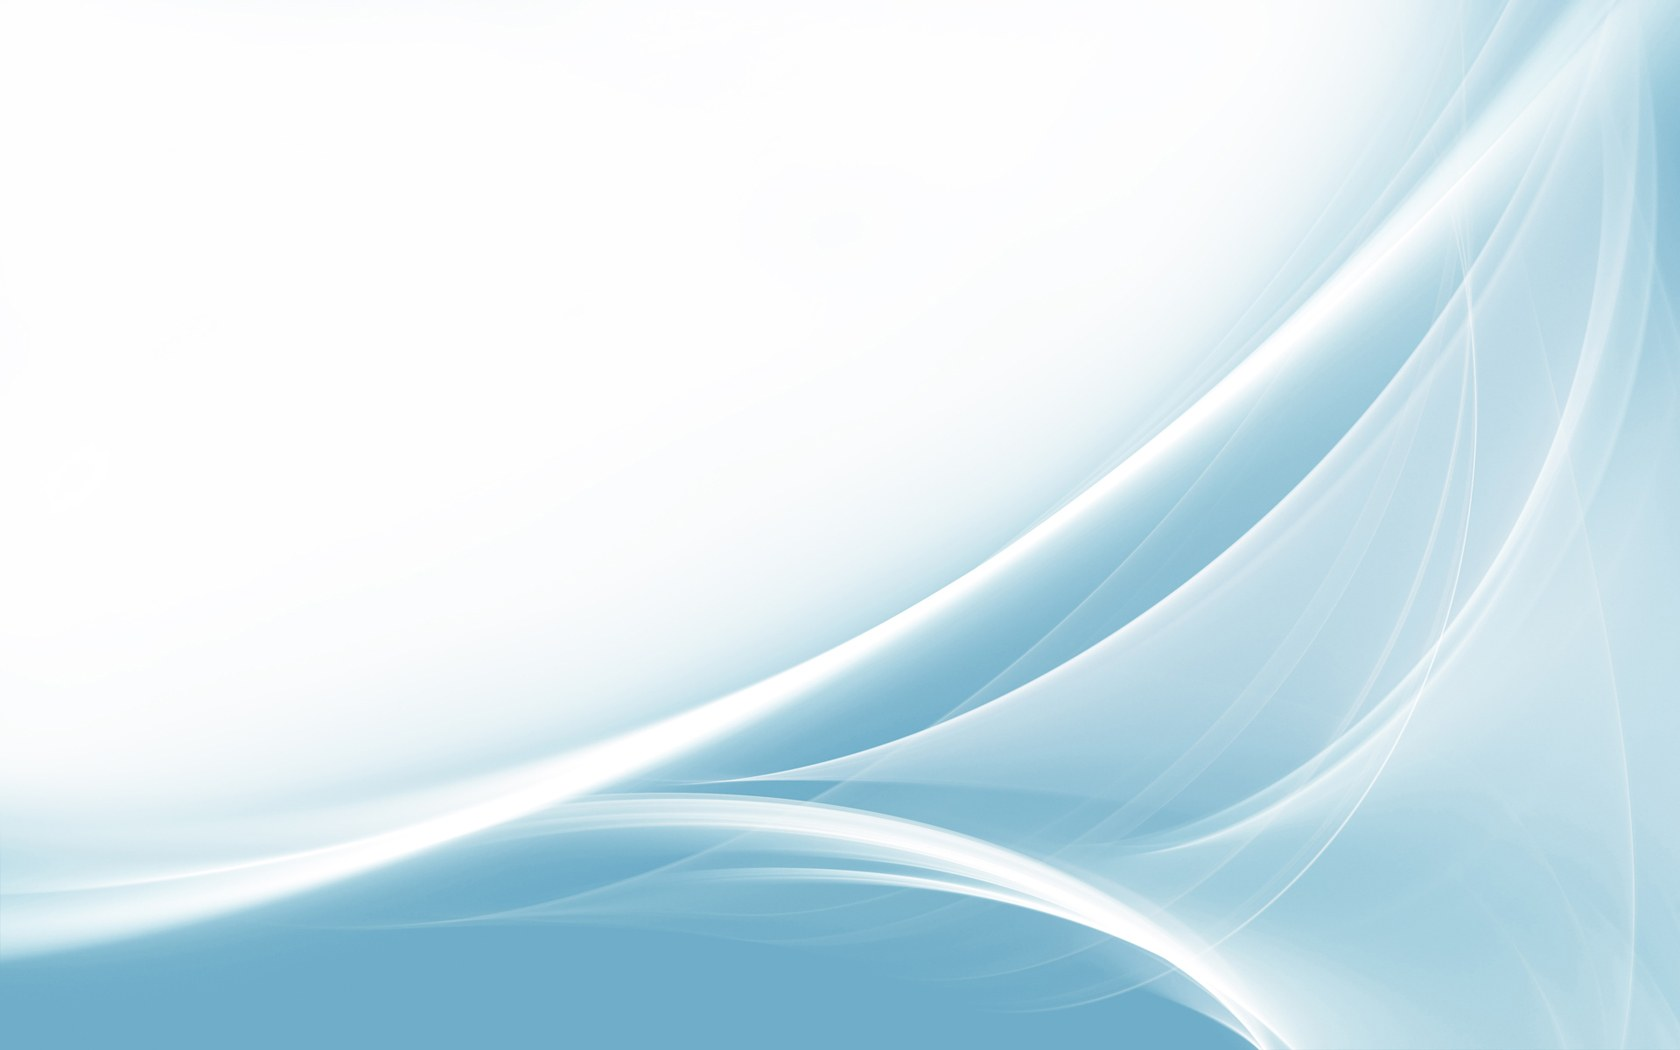 Abstract Blue Background Hd 4445 Wallpaper wallpaperskylinecom 1680x1050